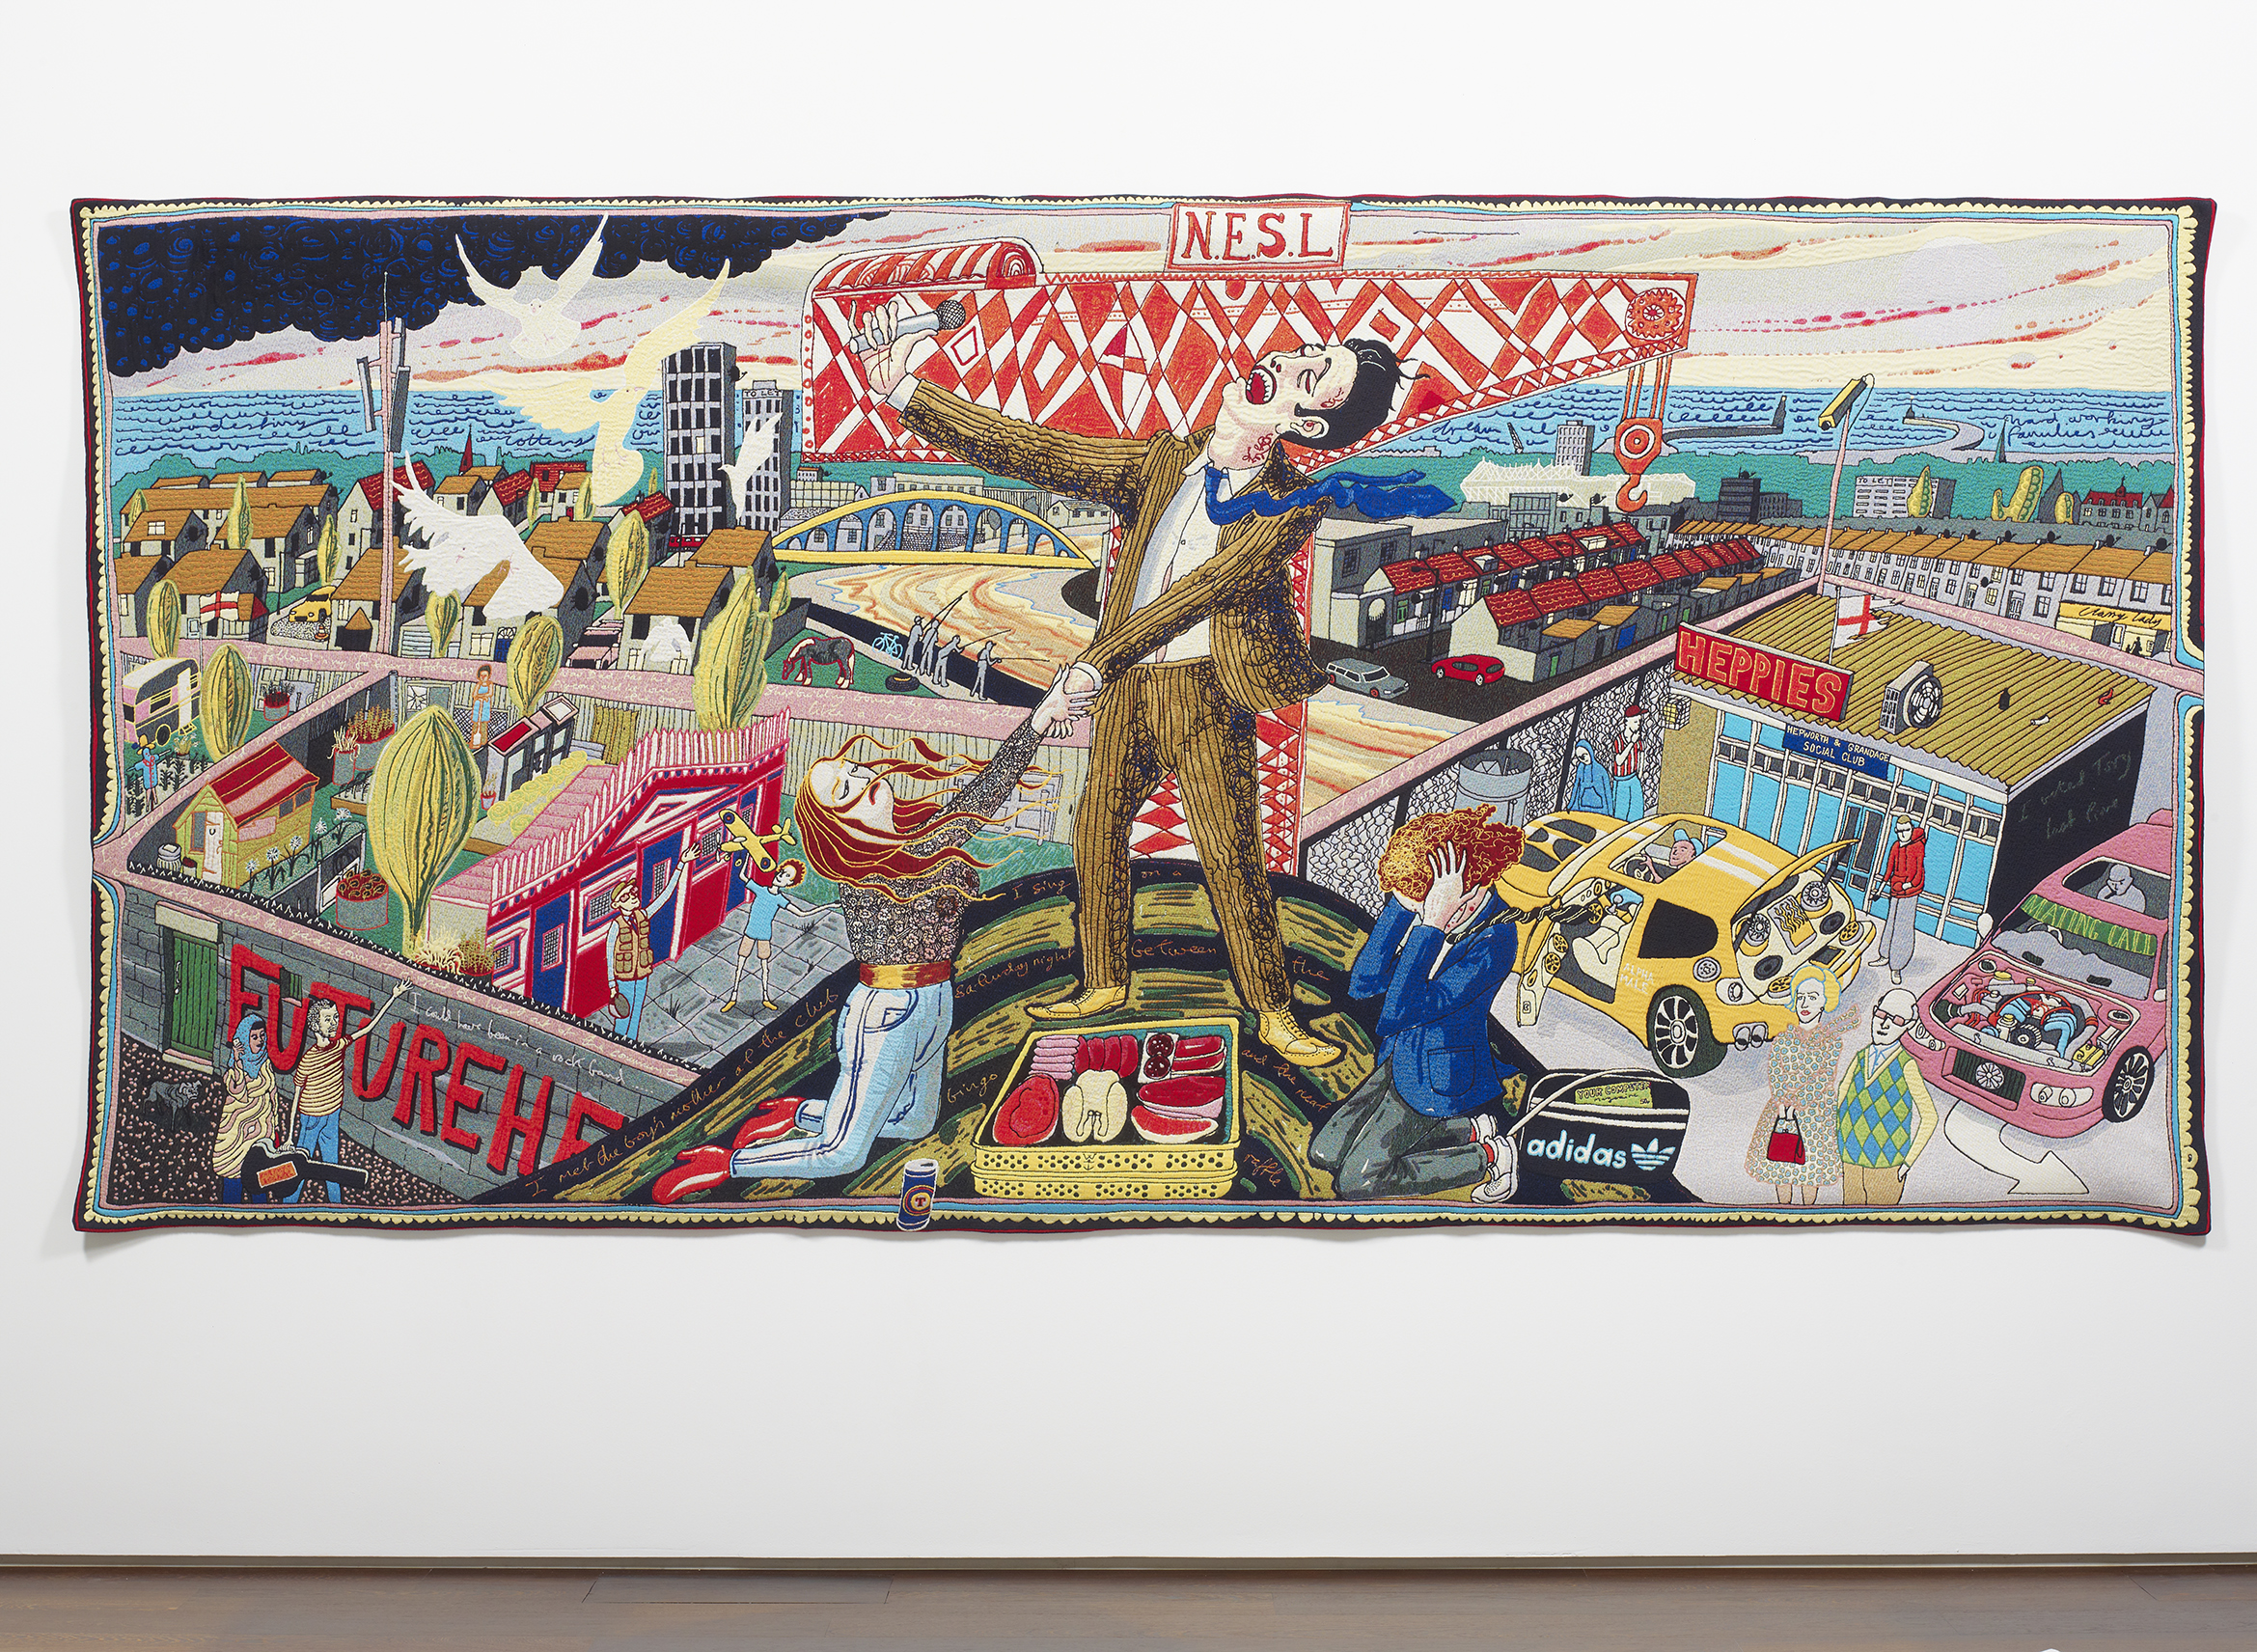 Grayson Perry The Agony in the Car Park 2012 © the artist. Arts Council Collection, Southbank Centre, London and British Council. Gift of the artist and Victoria Miro Gallery with the support of Channel 4 Television, the Art Fund and Sfumato Foundation with additional support from Alix Partners.